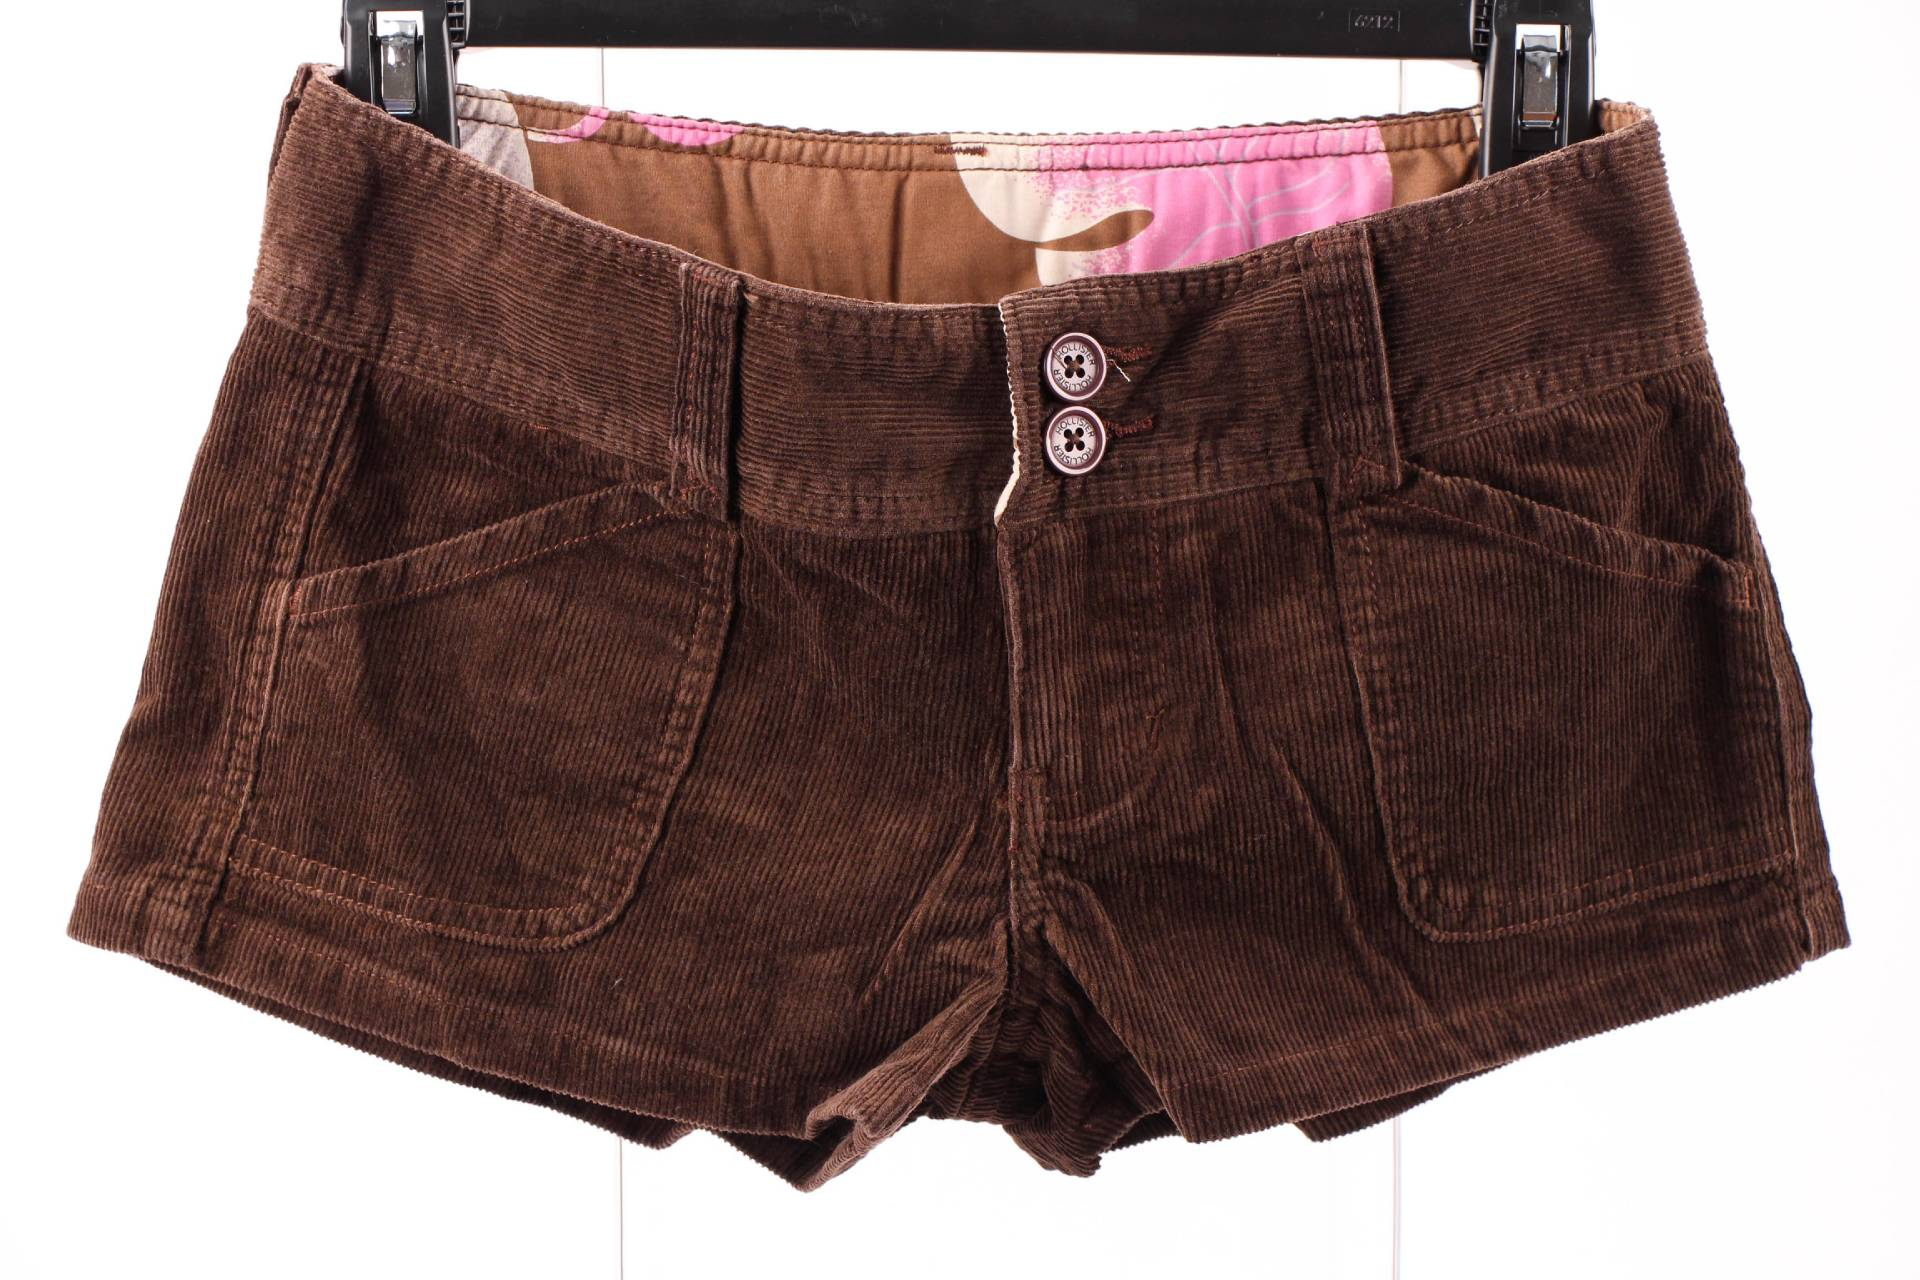 hollister shorts for girls - photo #24